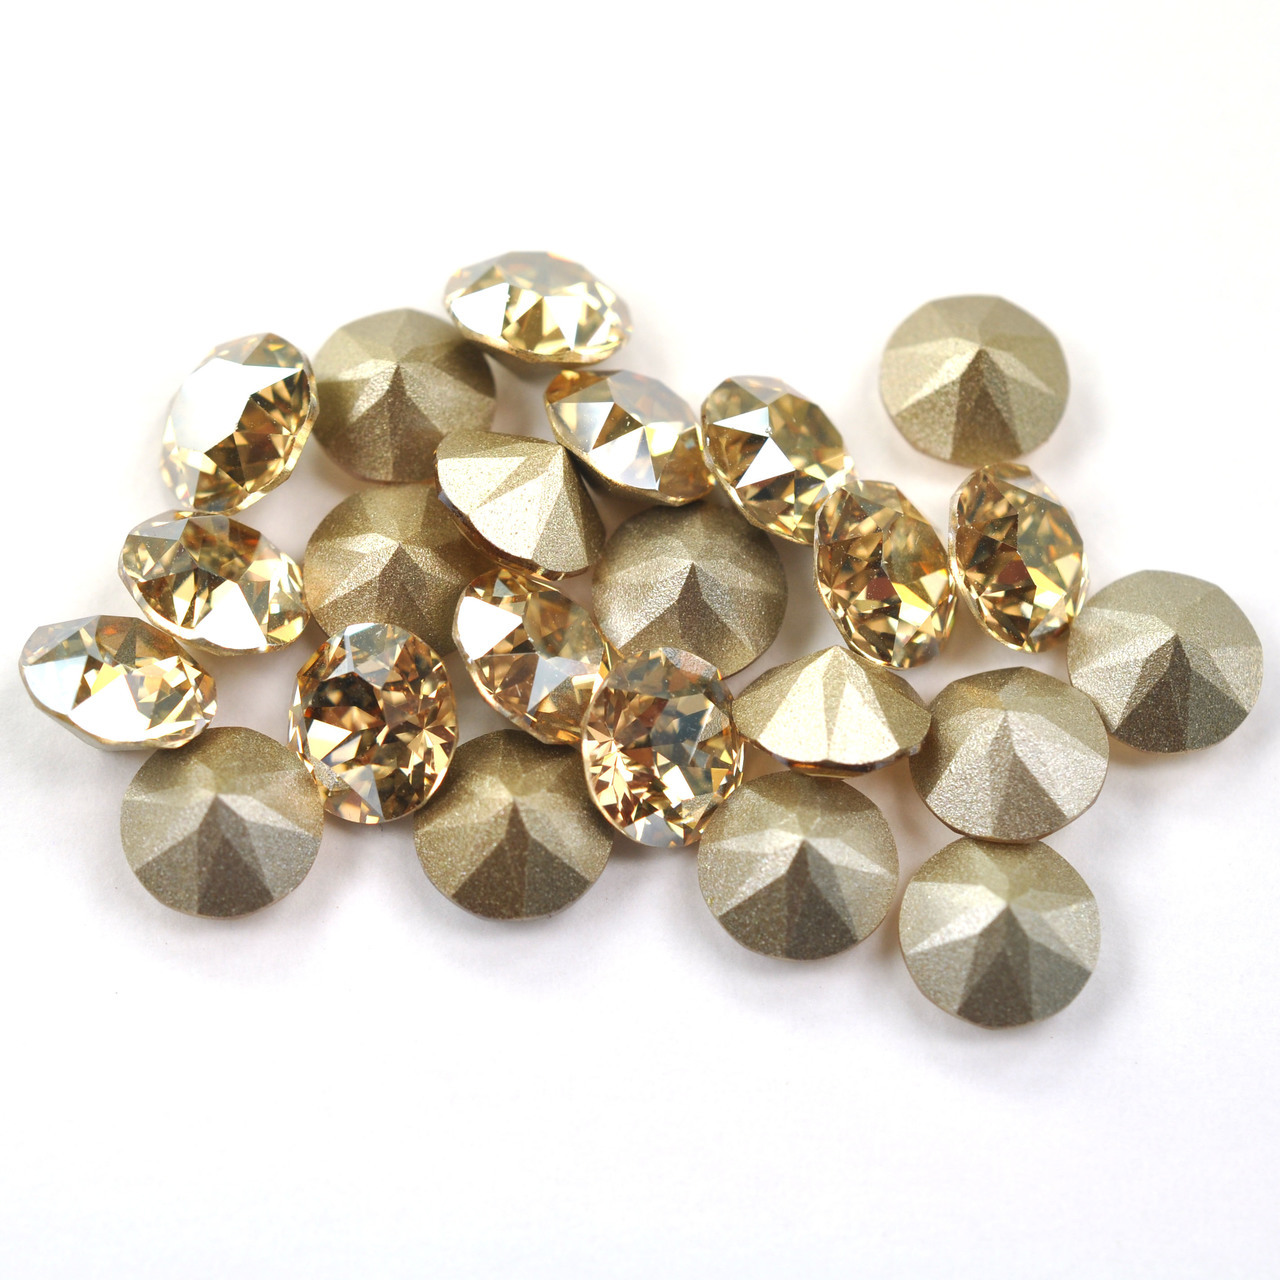 Swarovski Elements, Xirius Chaton 1088 PP14, Golden Shadow 2mm 10 buc